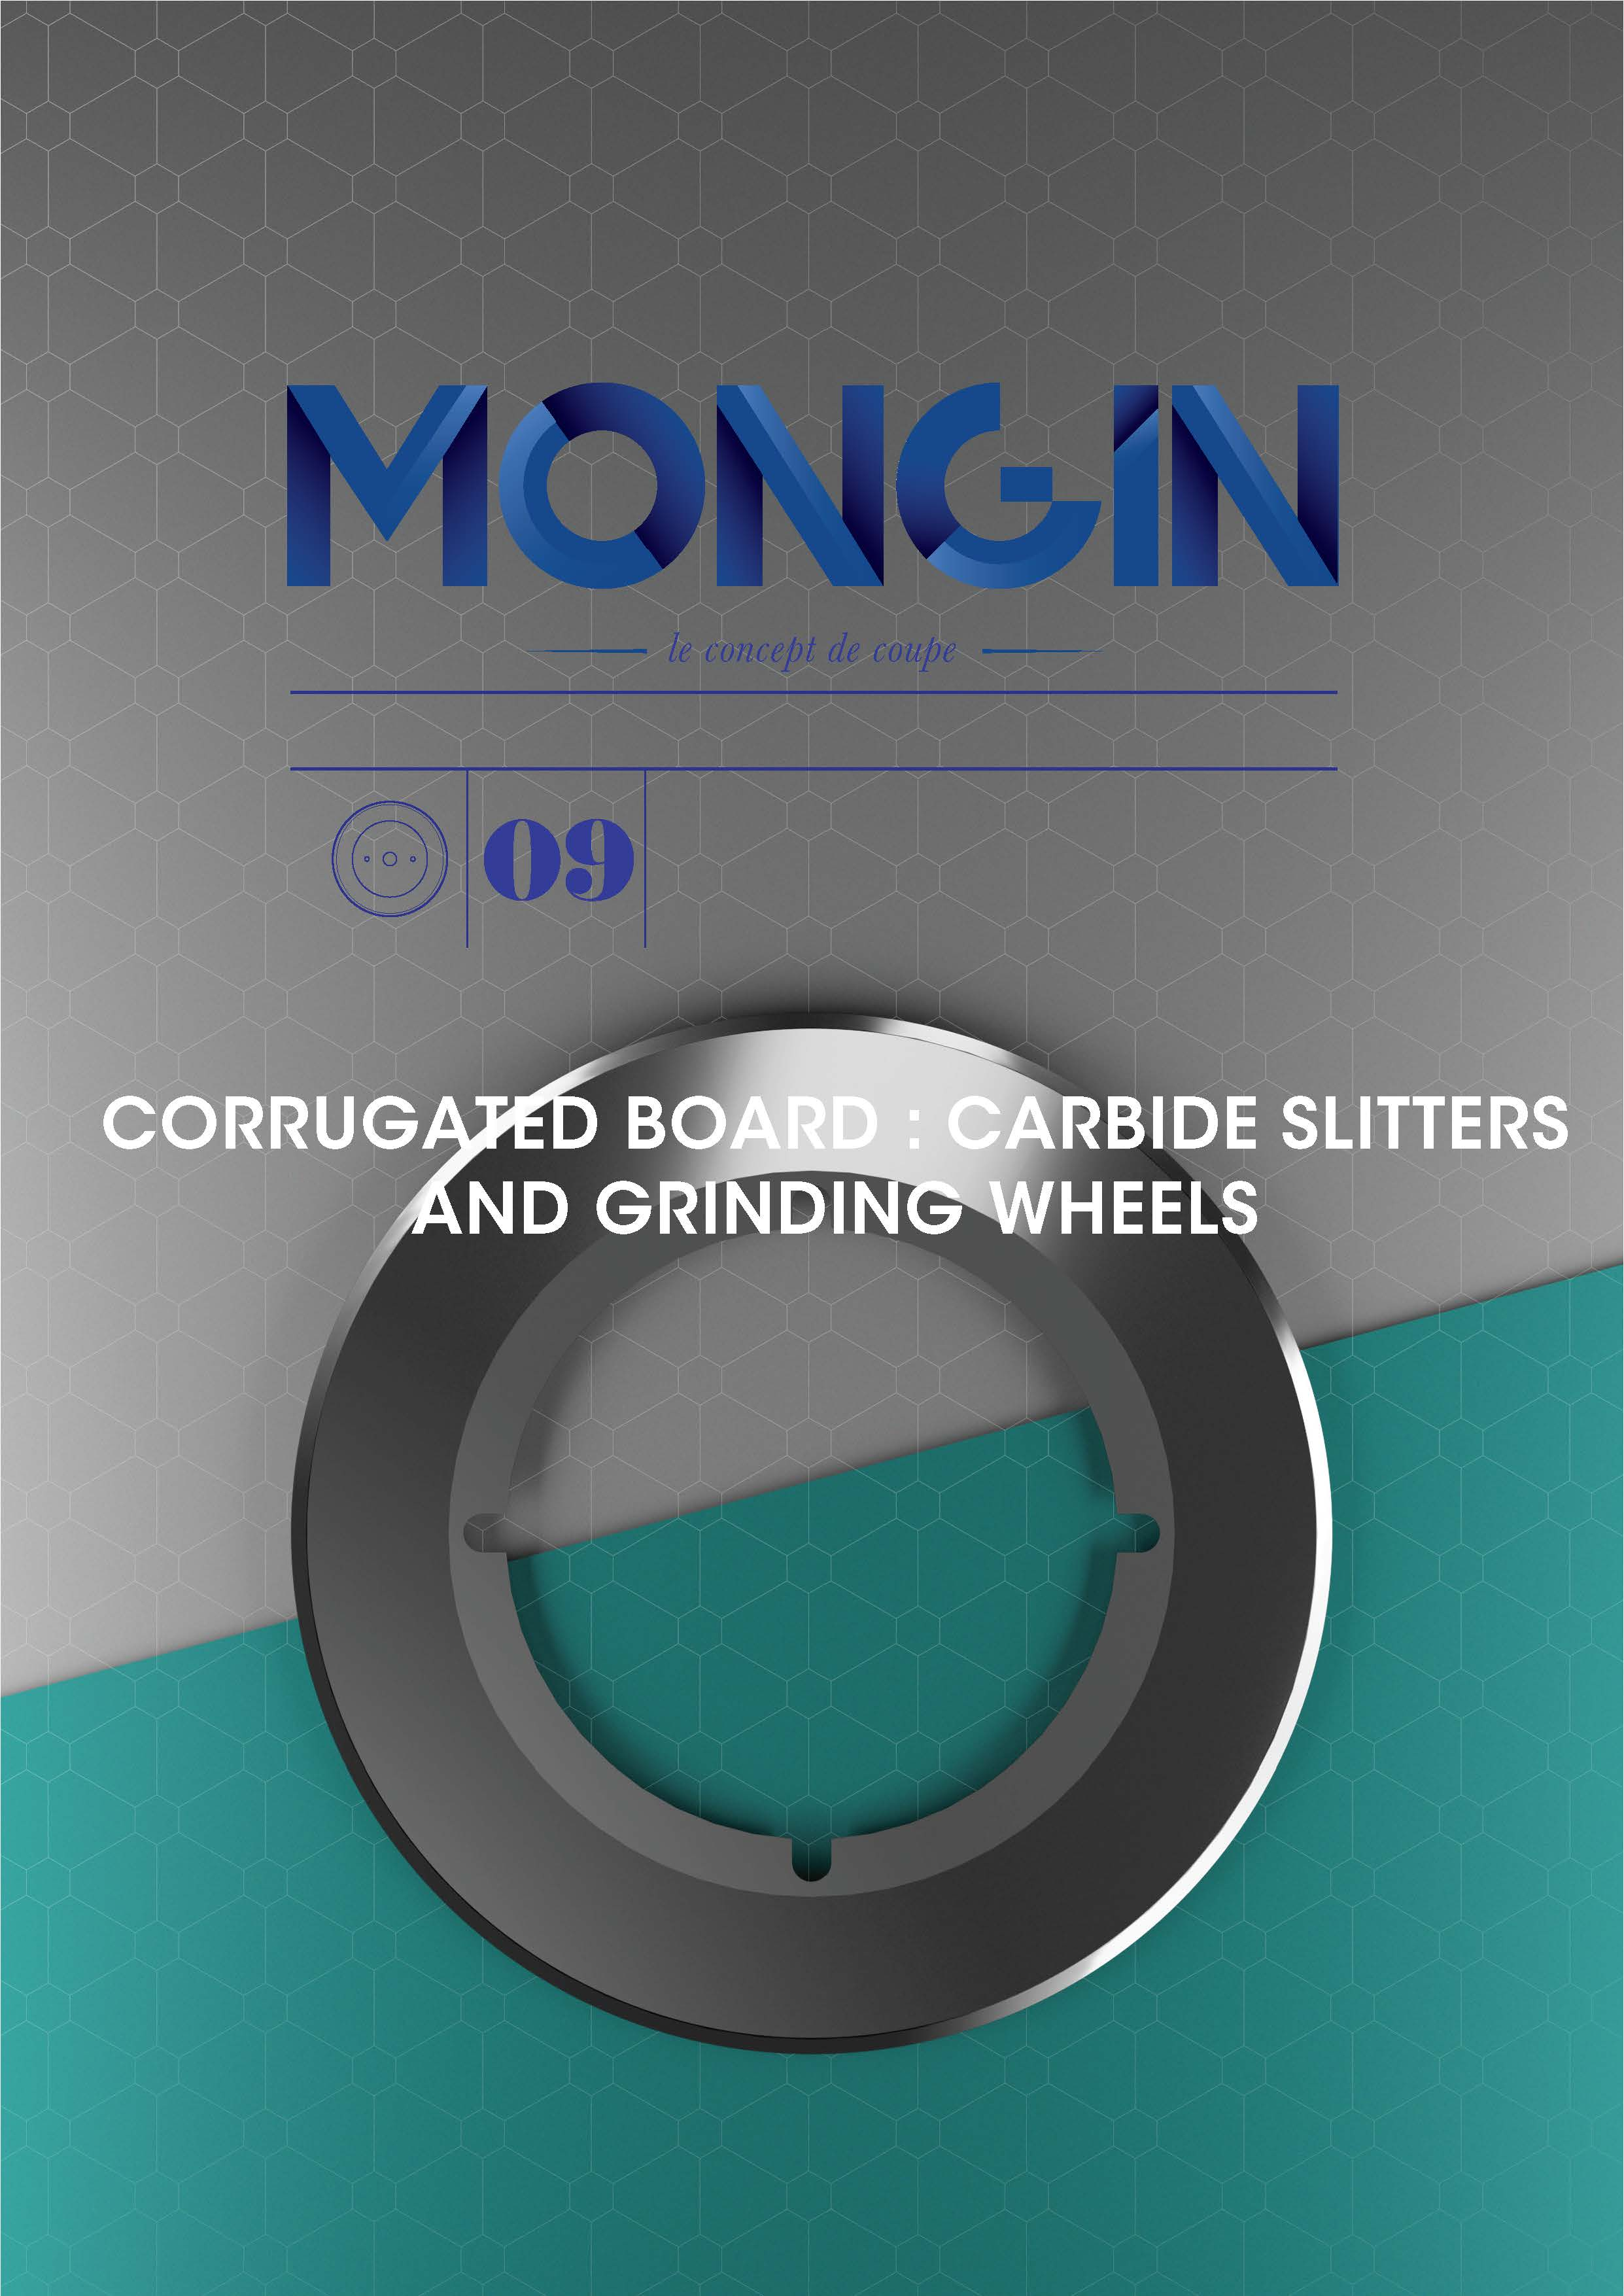 SLITTERS IN CARBIDE, GRINDING WHEELS, CORRUGATED BOARD